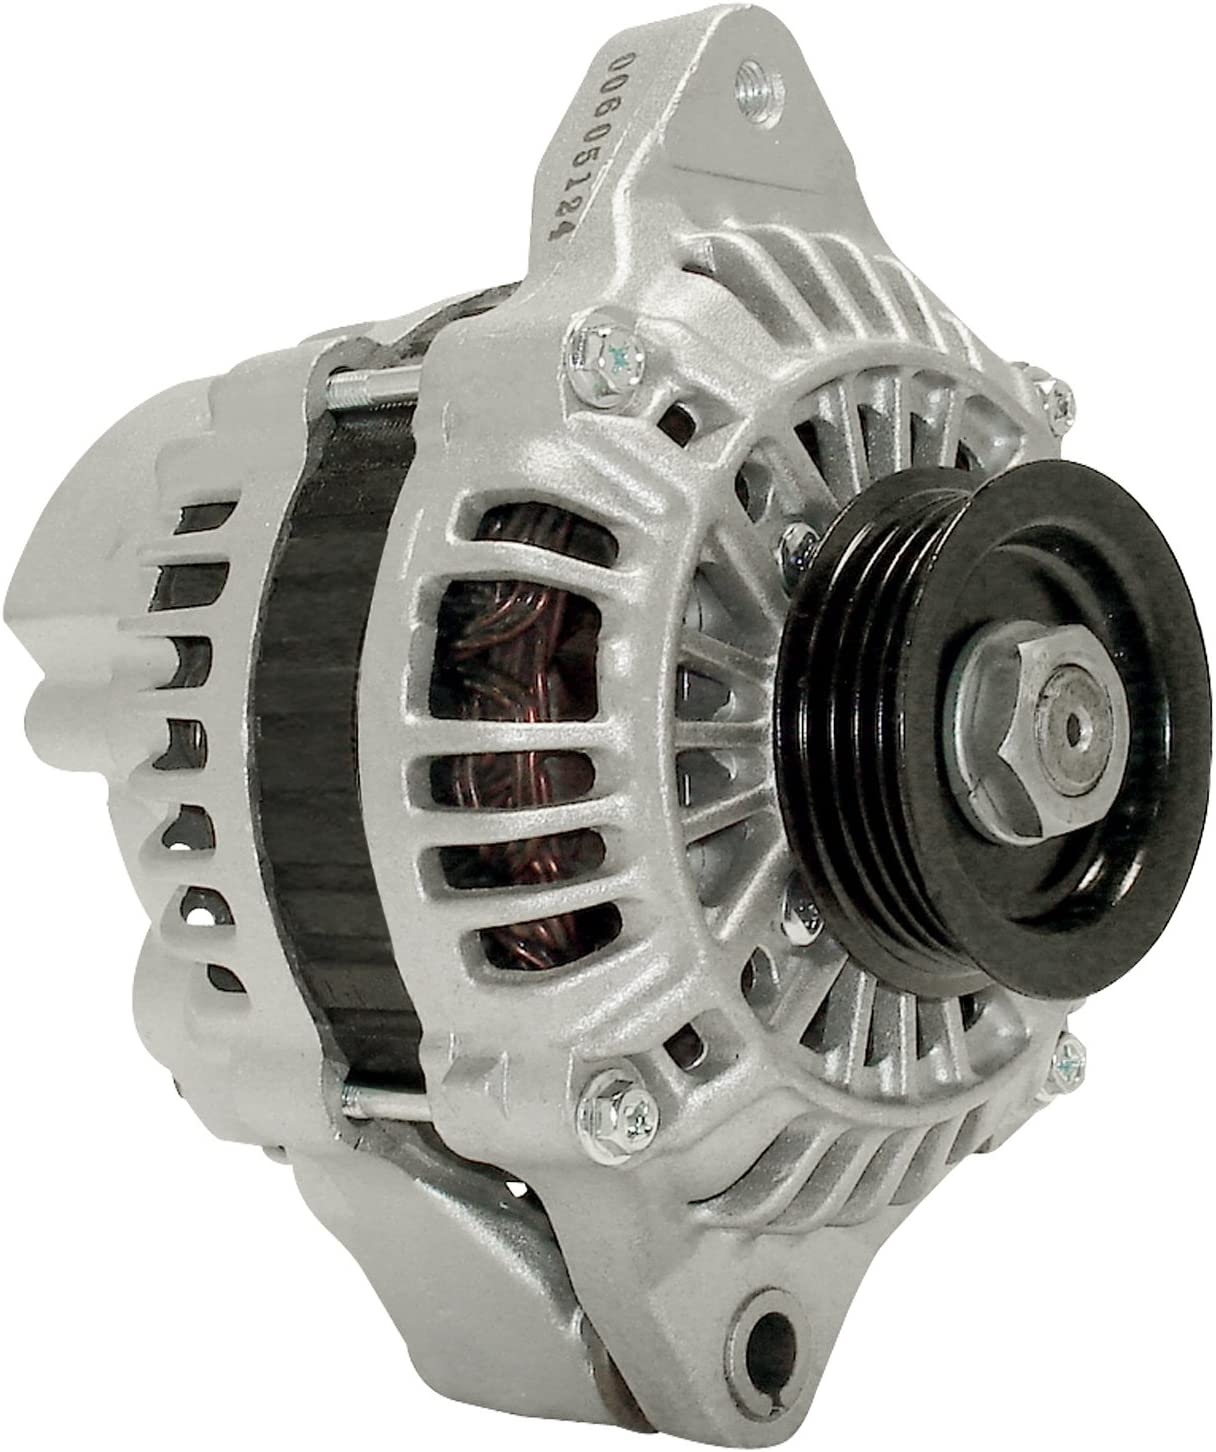 ACDelco 334-2481A Professional Alternator Remanufactured